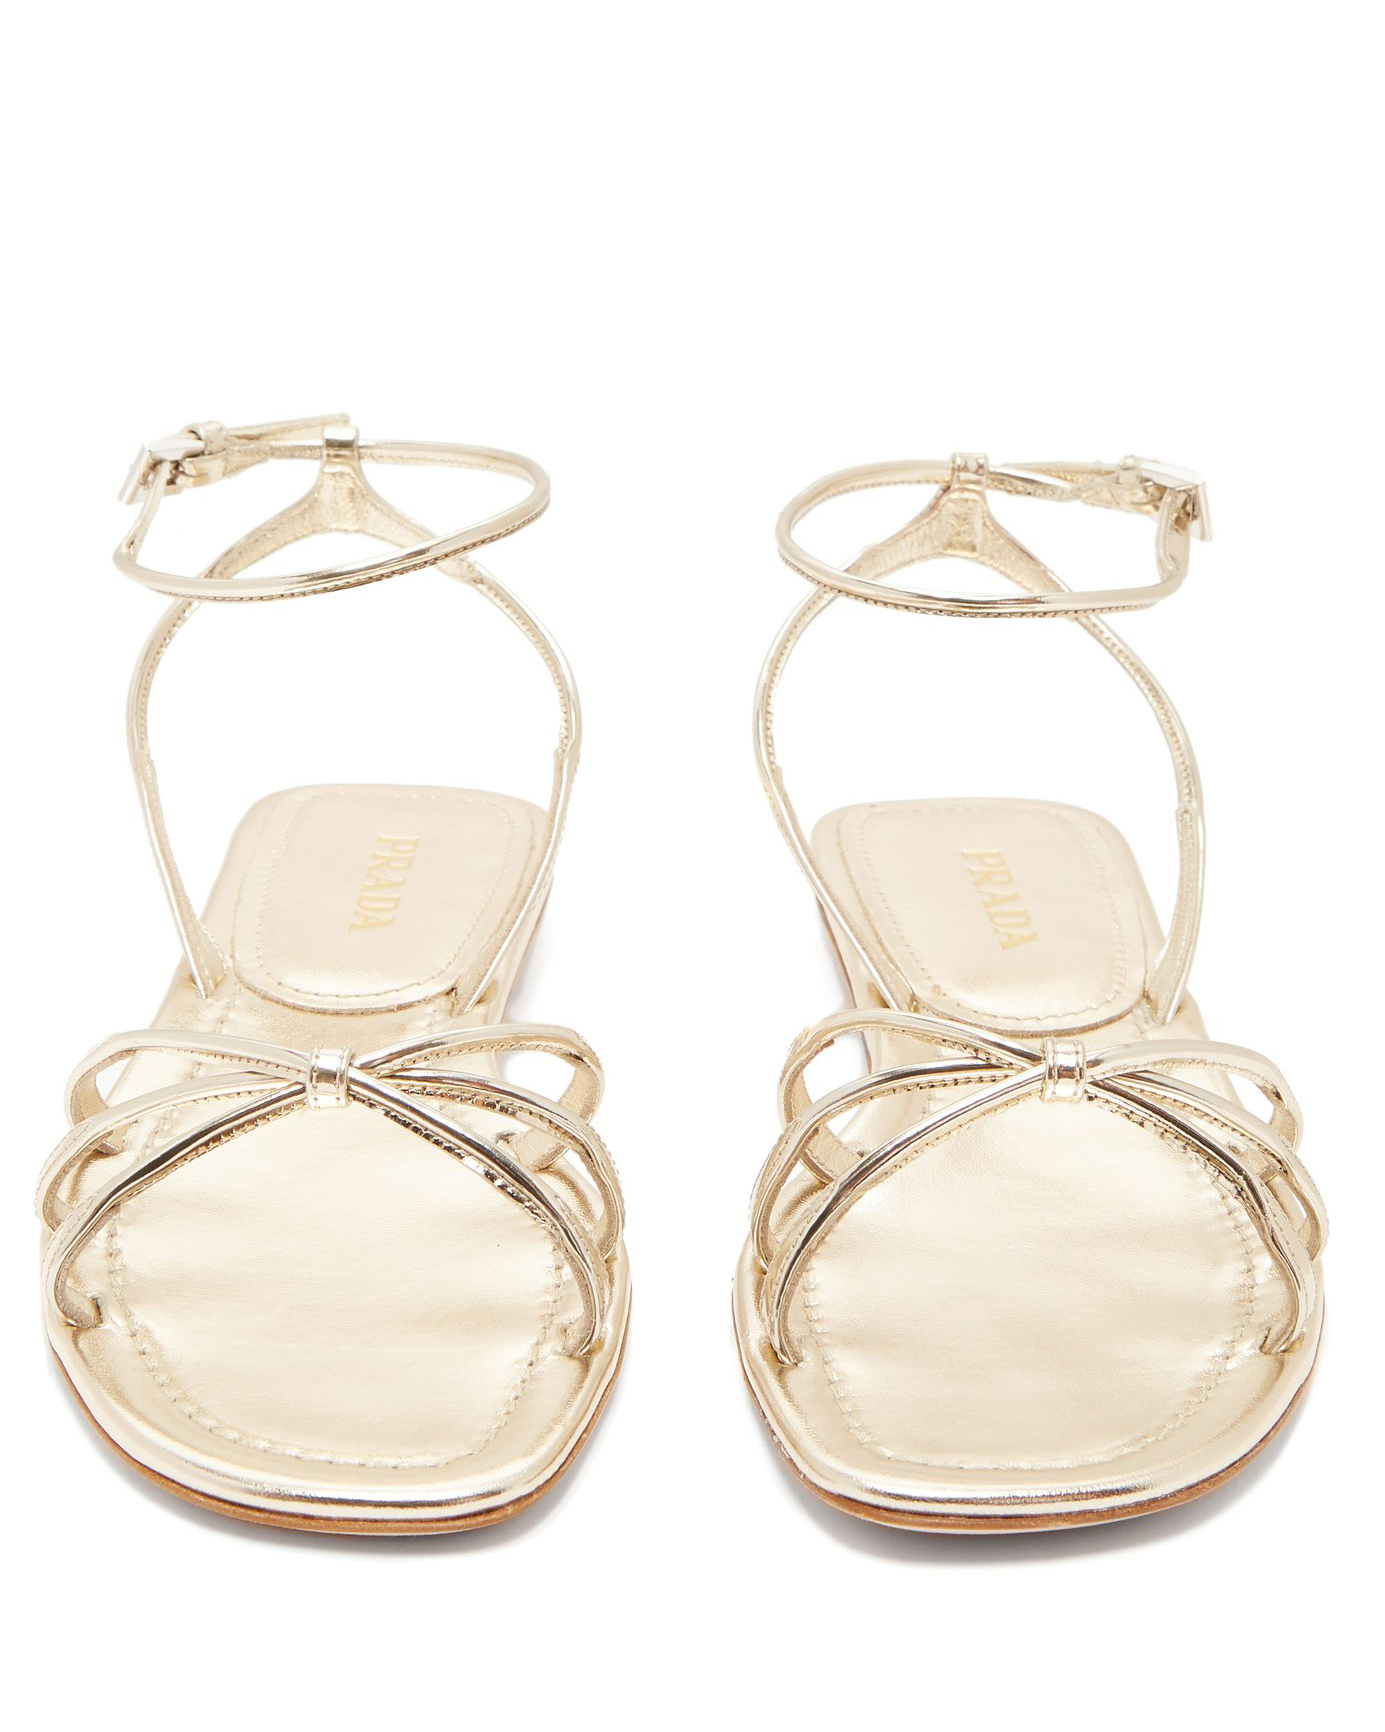 Prada Knot-Front Metallic Leather Sandals